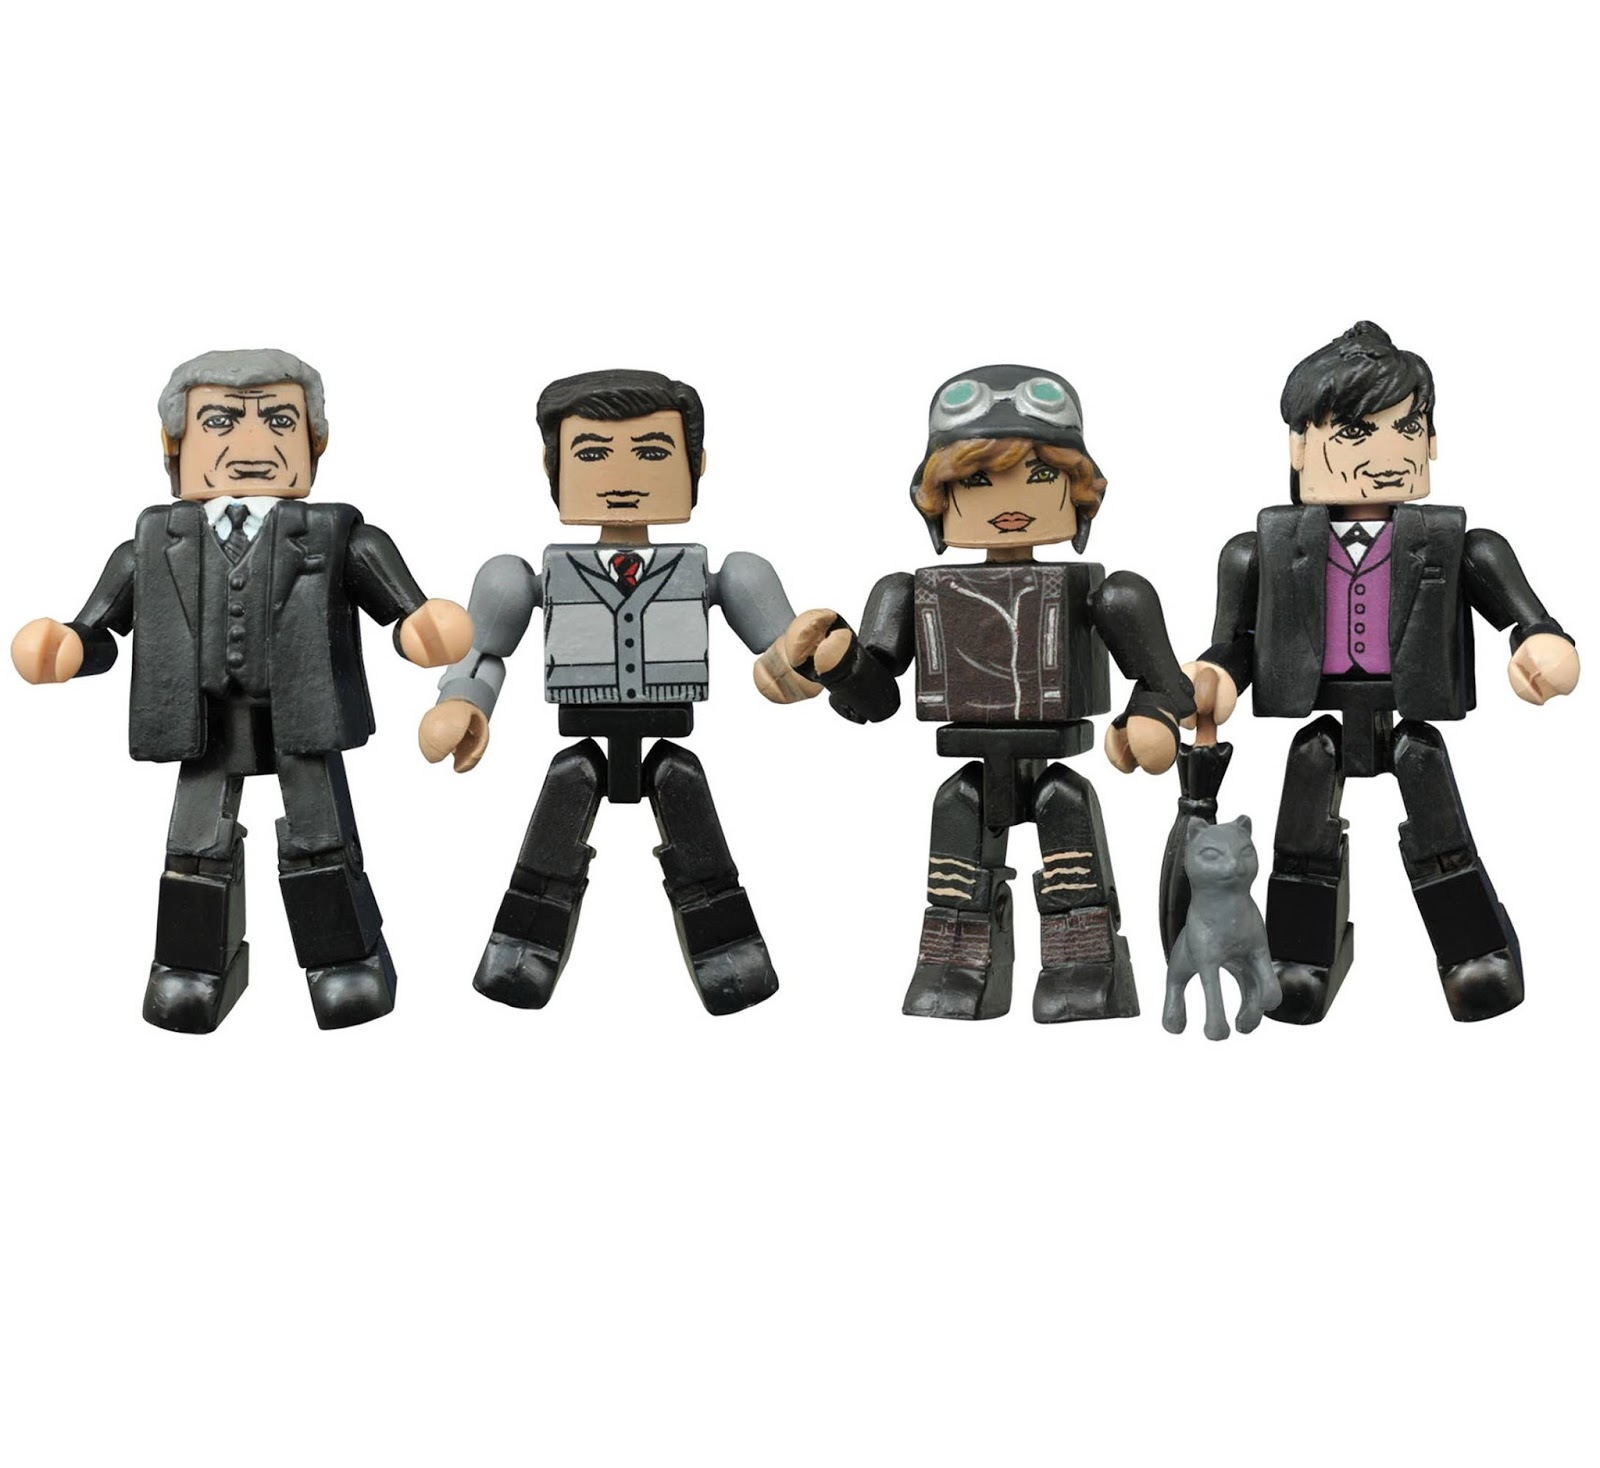 The blot says gotham minimates series 2 box set by diamond gotham minimates series 2 box set by diamond select toys ccuart Gallery